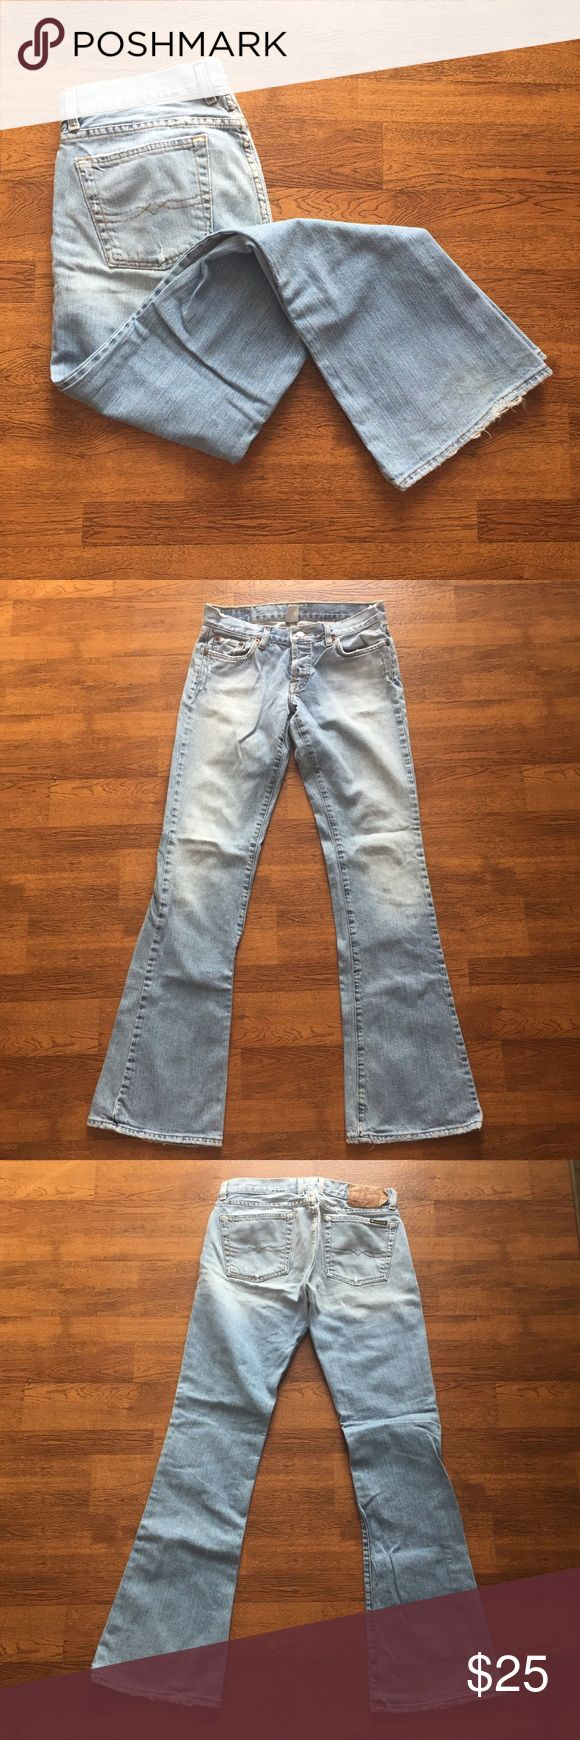 Lucky brand dungarees Ugh wash distress dungaree jeans from lucky brand. The bottoms have light stains on them, not super noticeable. Waistband is 13.5 inches across, rise is 7 inches, inseam is 32.5 inches. Lucky Brand Jeans Boot Cut